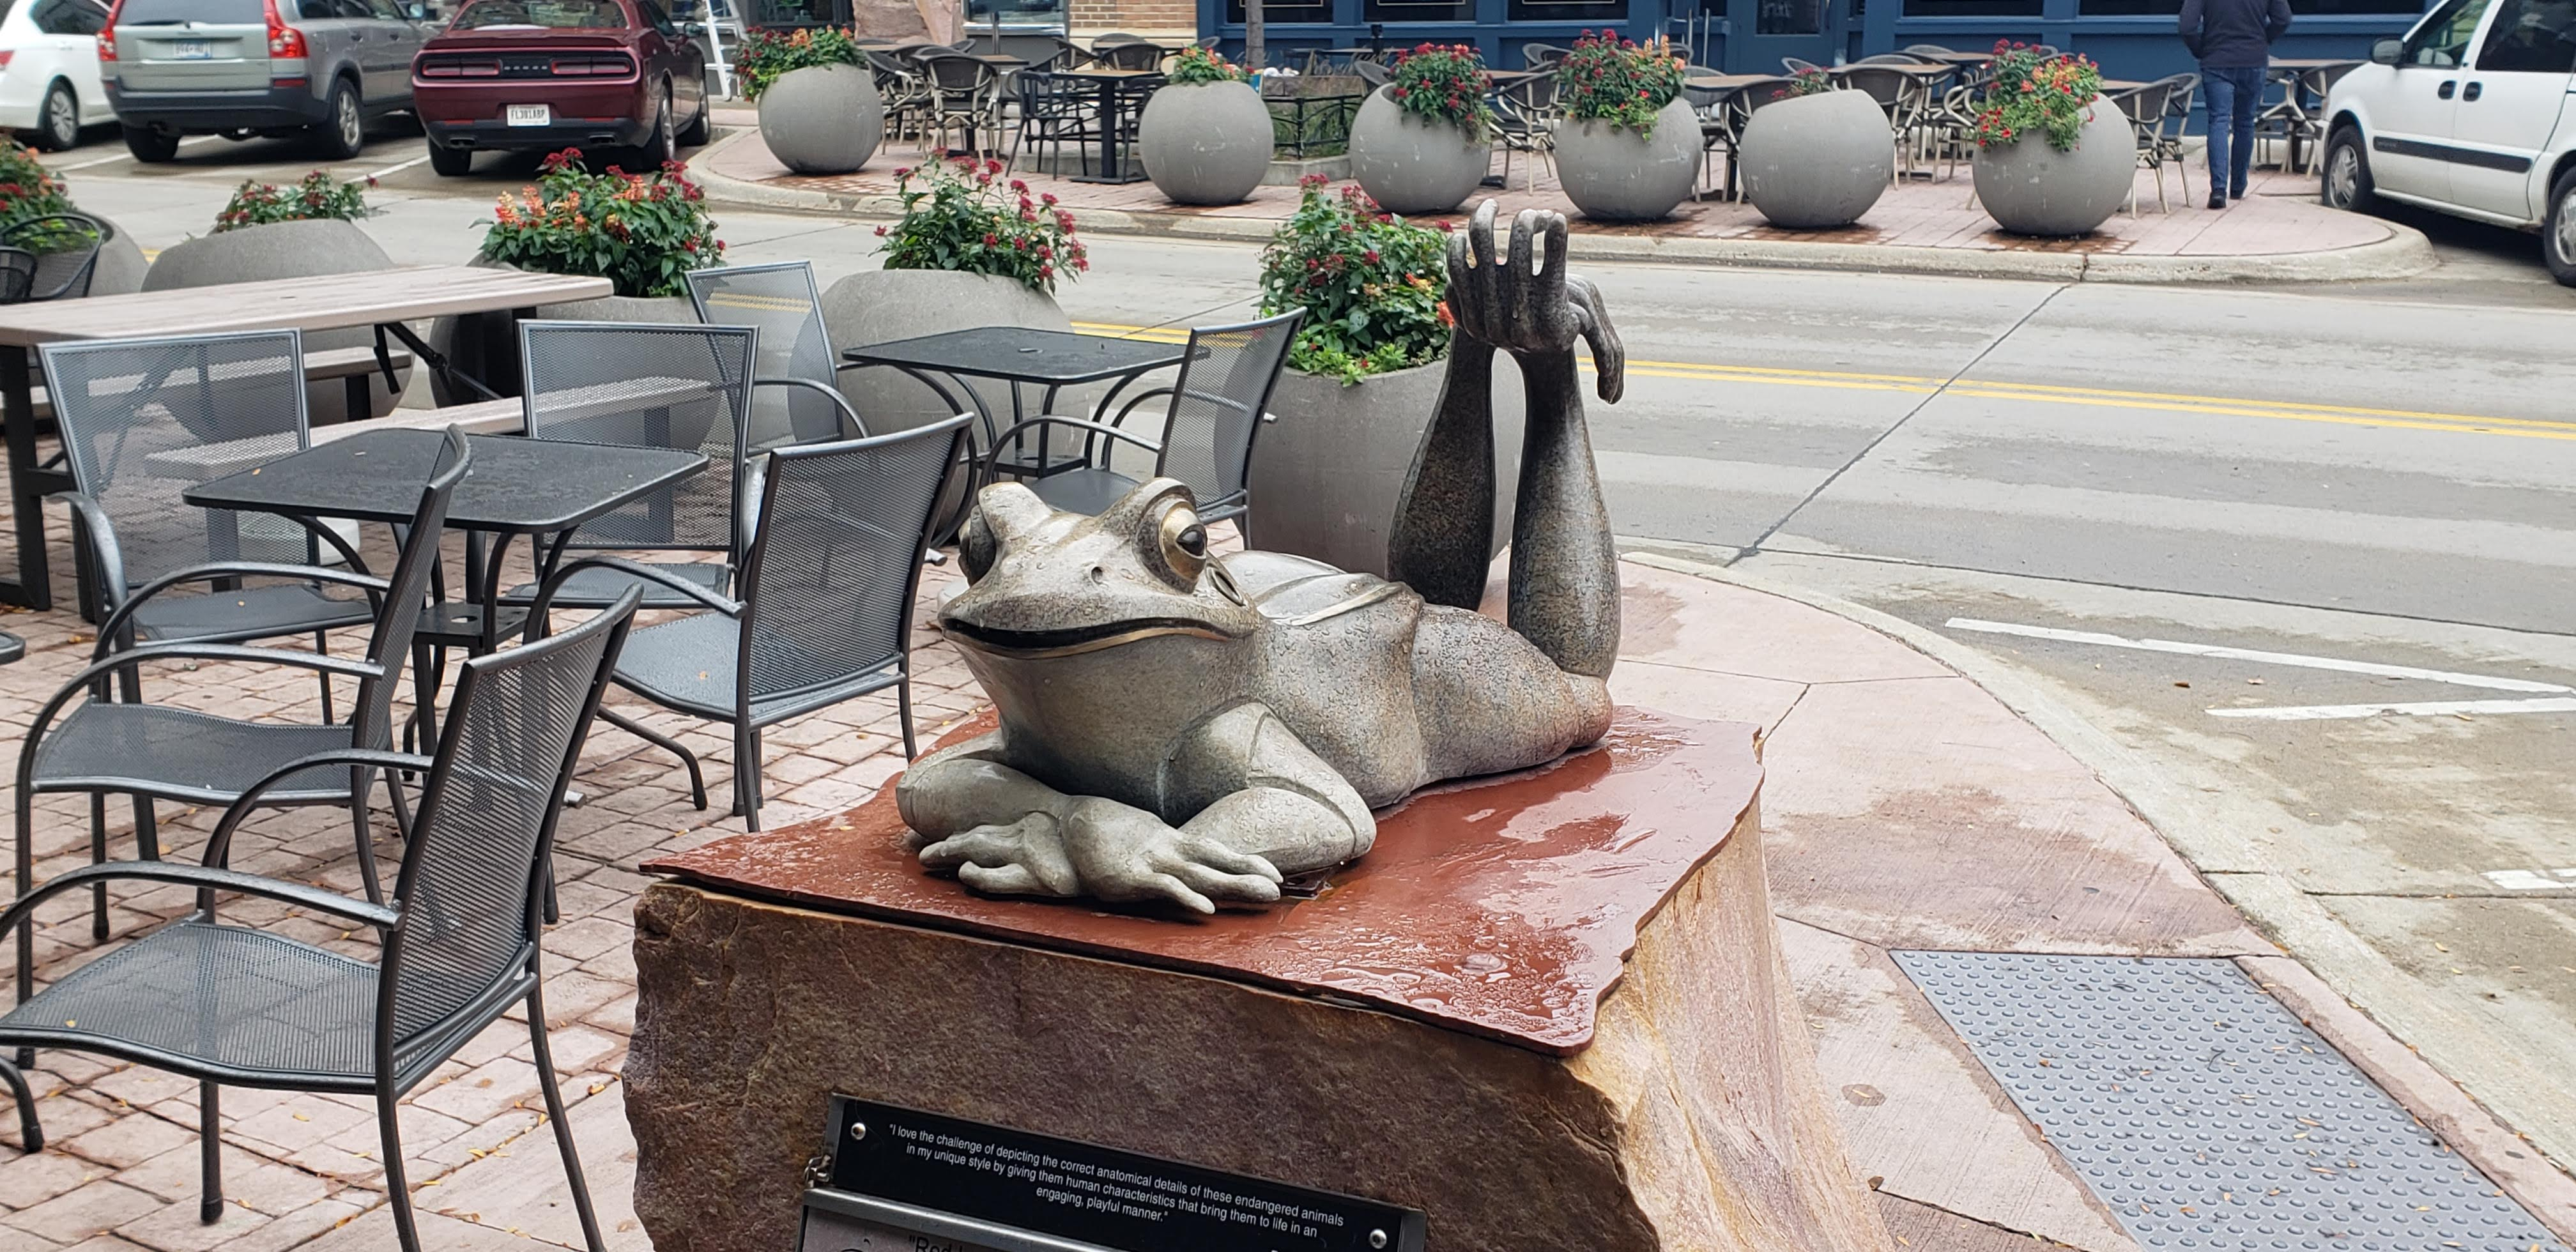 The Top Things To Do in Sioux Falls winning frog sculpture